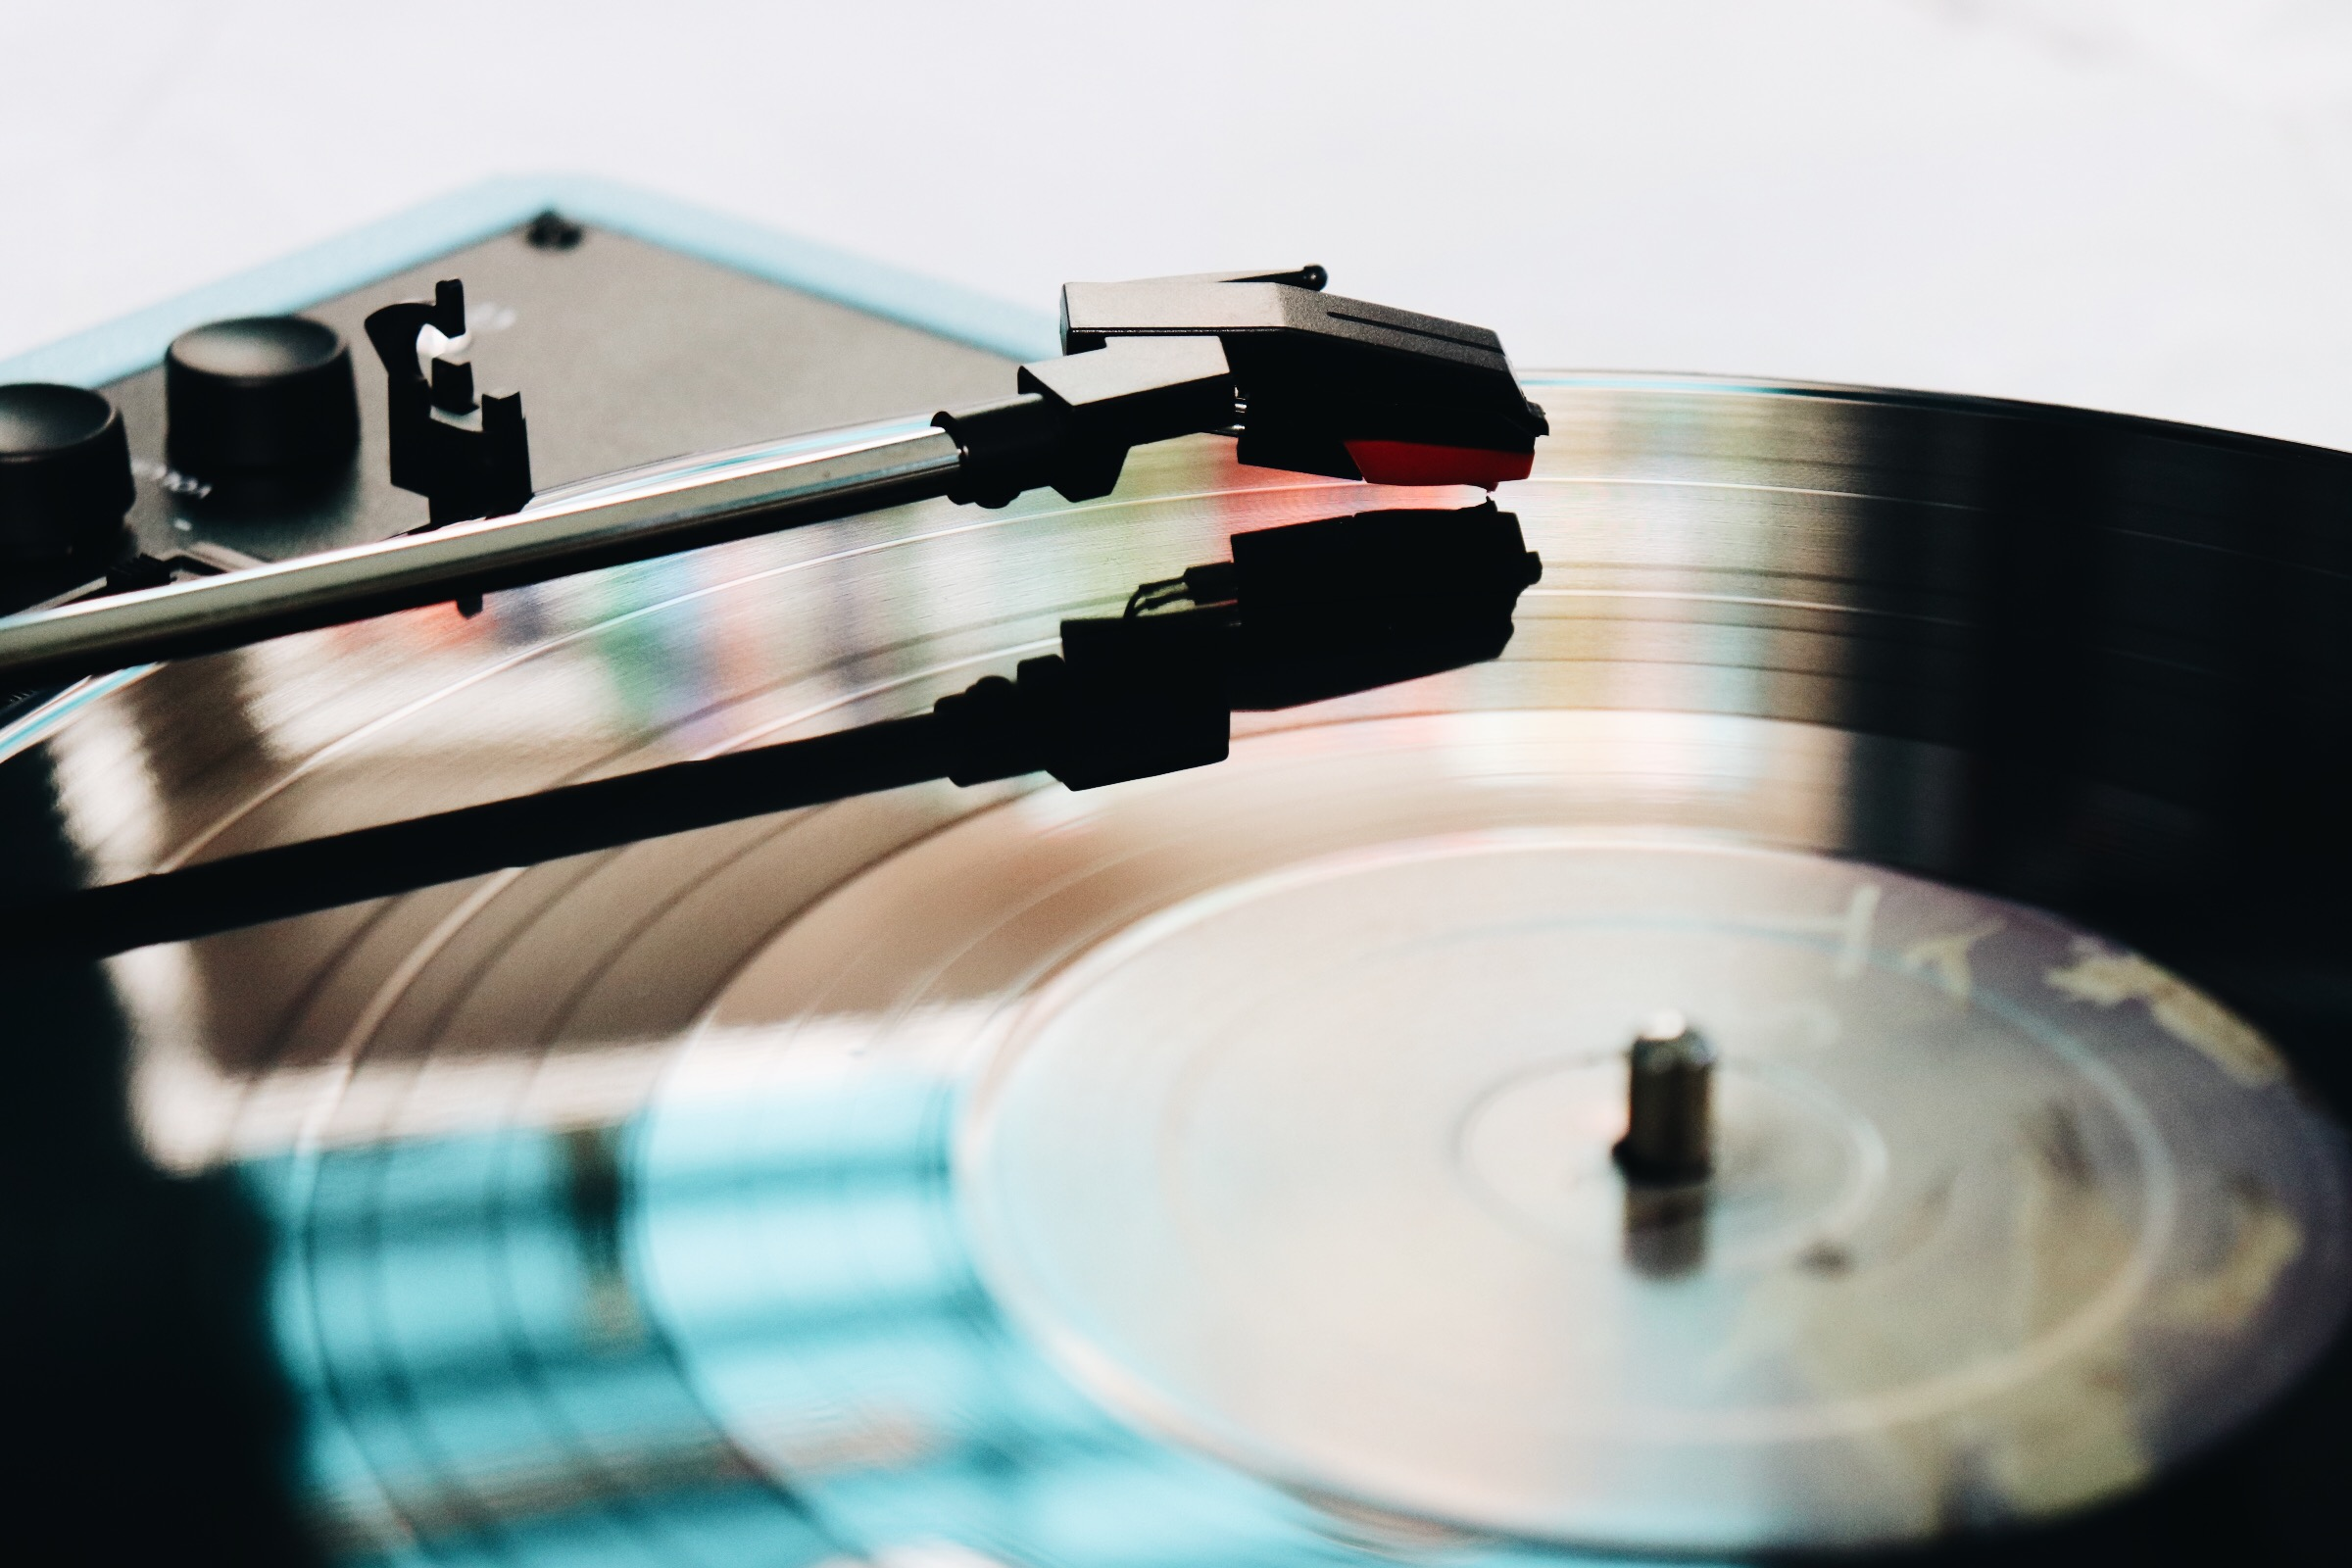 The Vinyl Record Ritual: How LPs Provide a Traditional Listening Experience